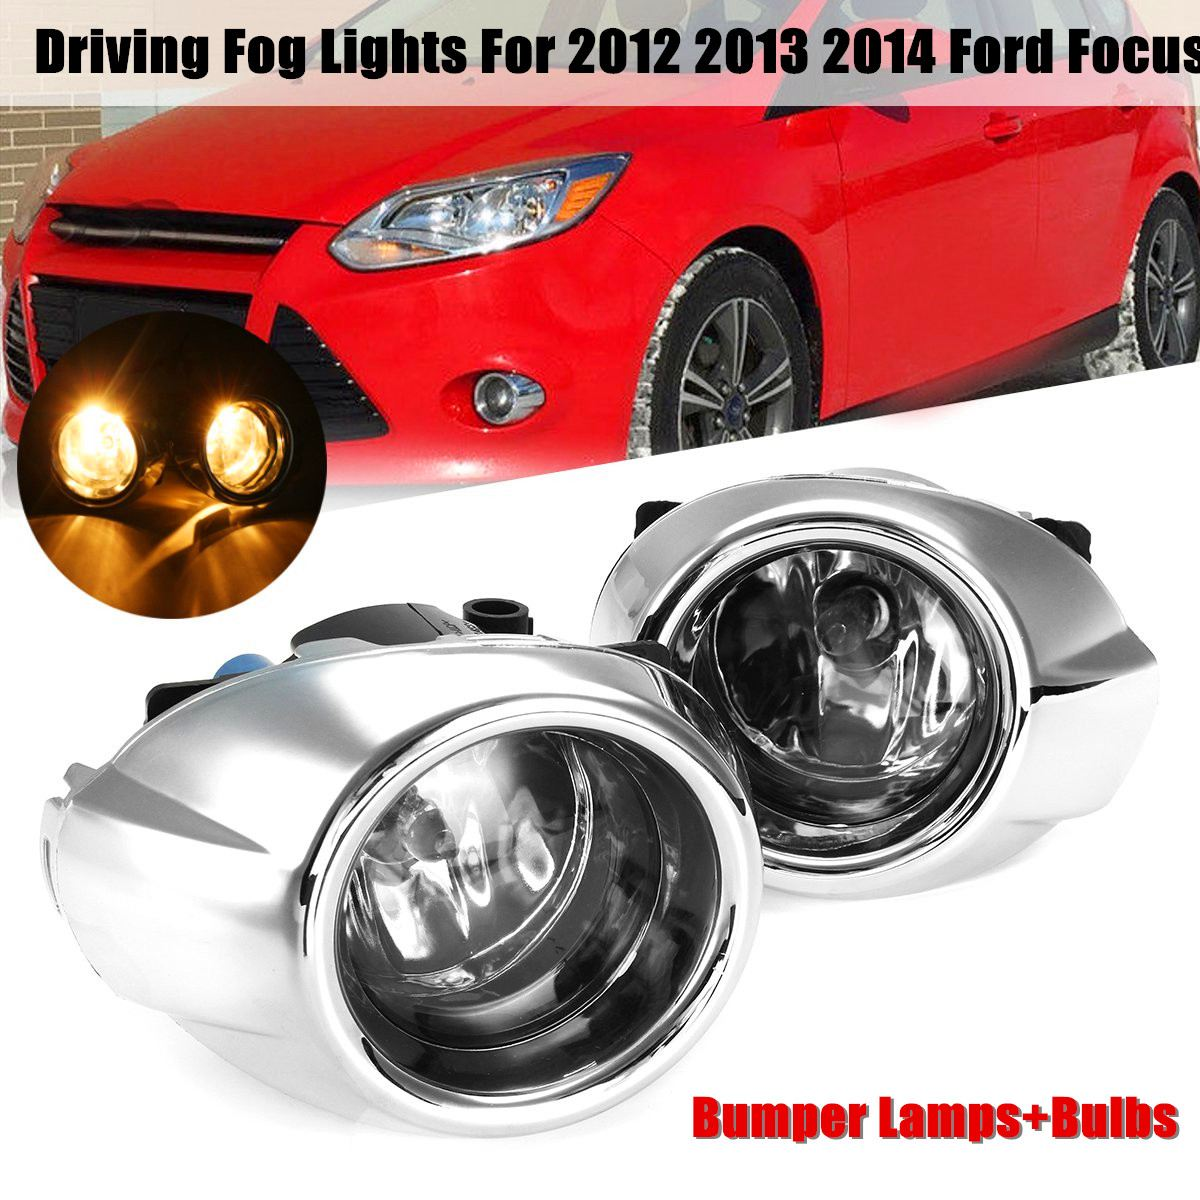 1 Pair Car Replacement Clear Lens Fog Lights Lamps Bulbs For Ford /Focus 2012 2013 2014 for lexus rx gyl1 ggl15 agl10 450h awd 350 awd 2008 2013 car styling led fog lights high brightness fog lamps 1set